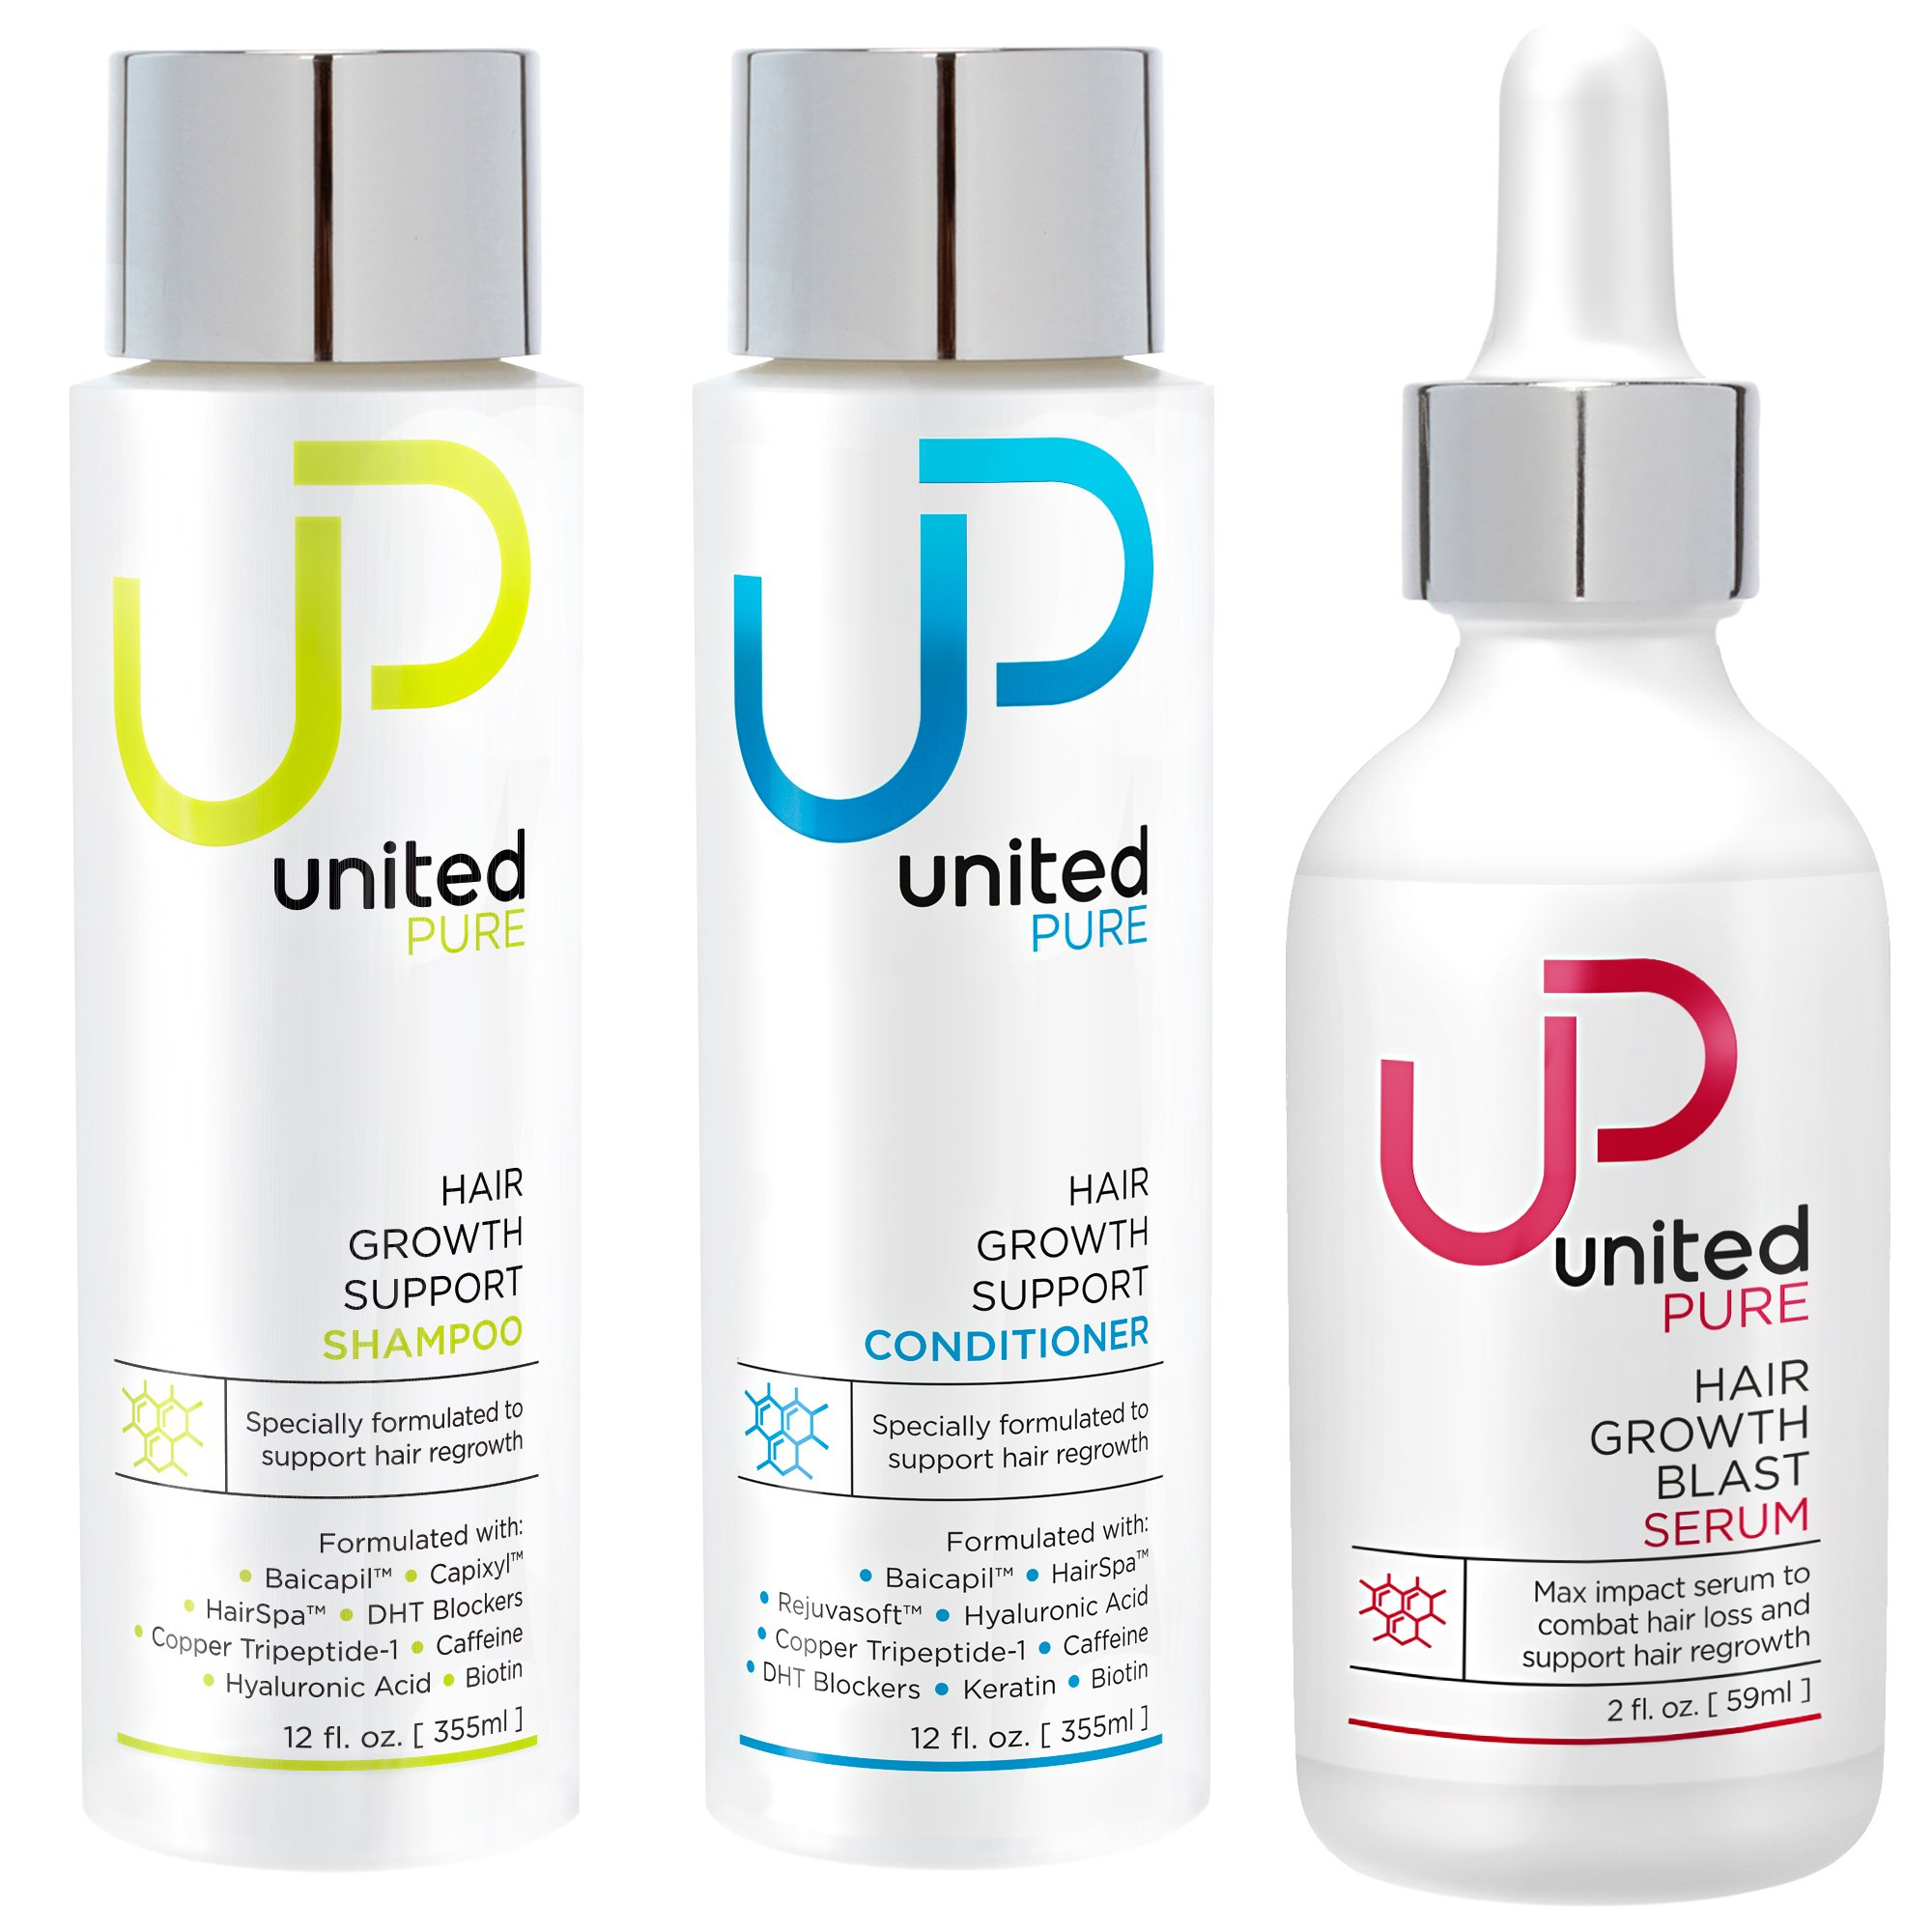 New Hair Growth Support Shampoo, Conditioner, and Serum - United Pure 12oz DHT Blocking Anti Hair Loss Combo w/Redensyl, Baicapil, Capixyl, HairSpa, Biotin, Hyaluronic Acid, Keratin & More by United Pure